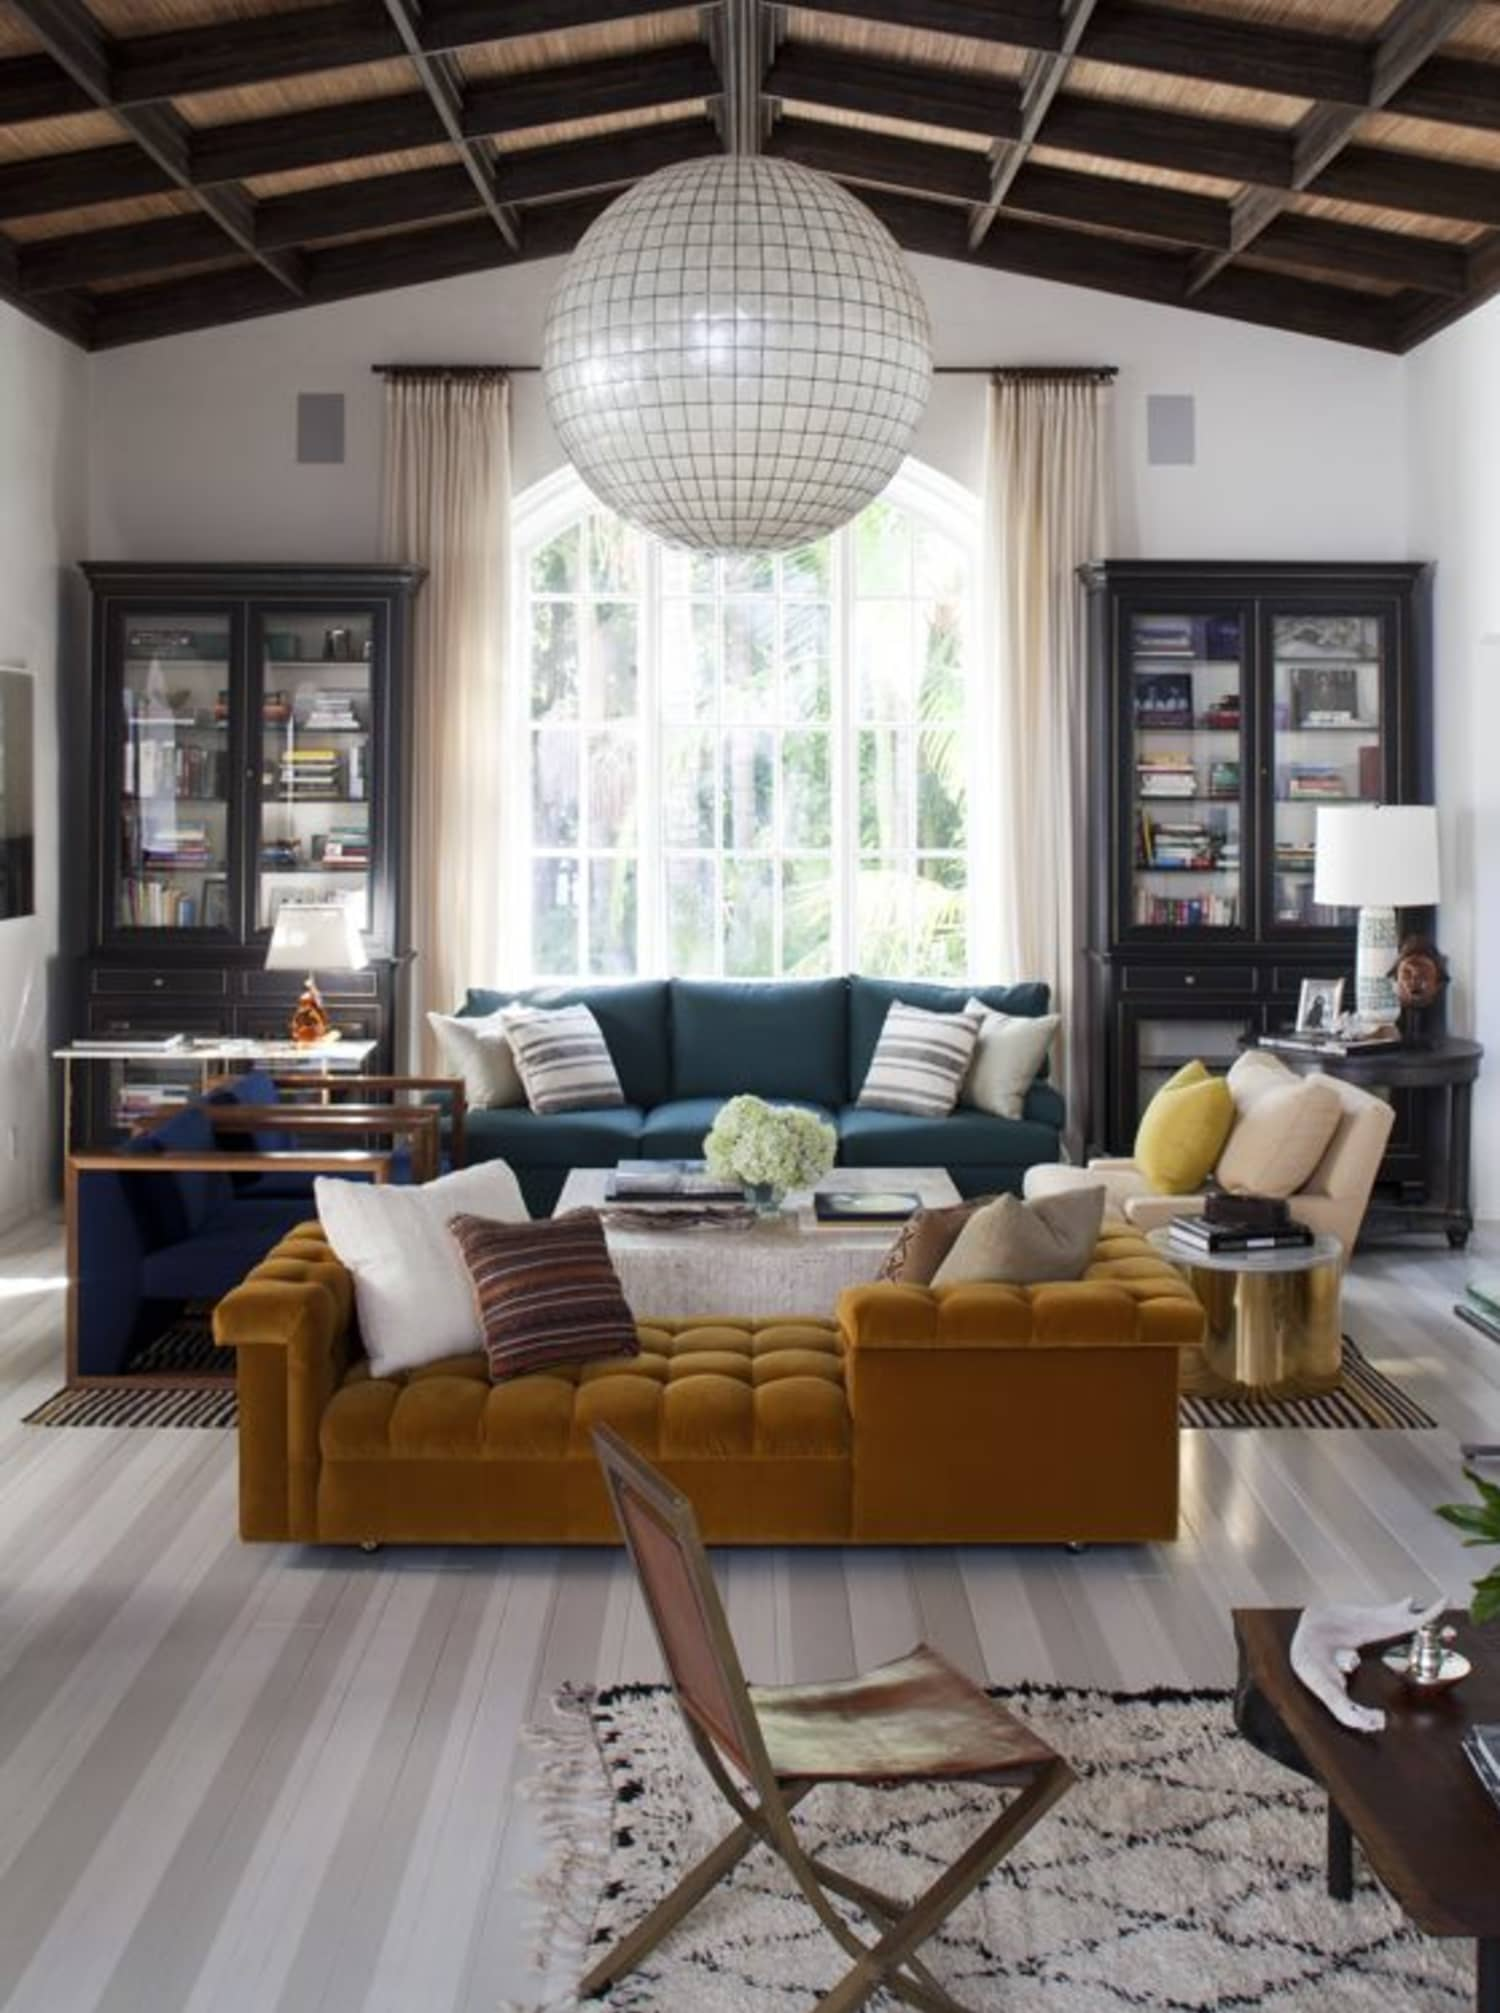 Design Lessons: How To Spot (& Fix!) an Off Balance Room